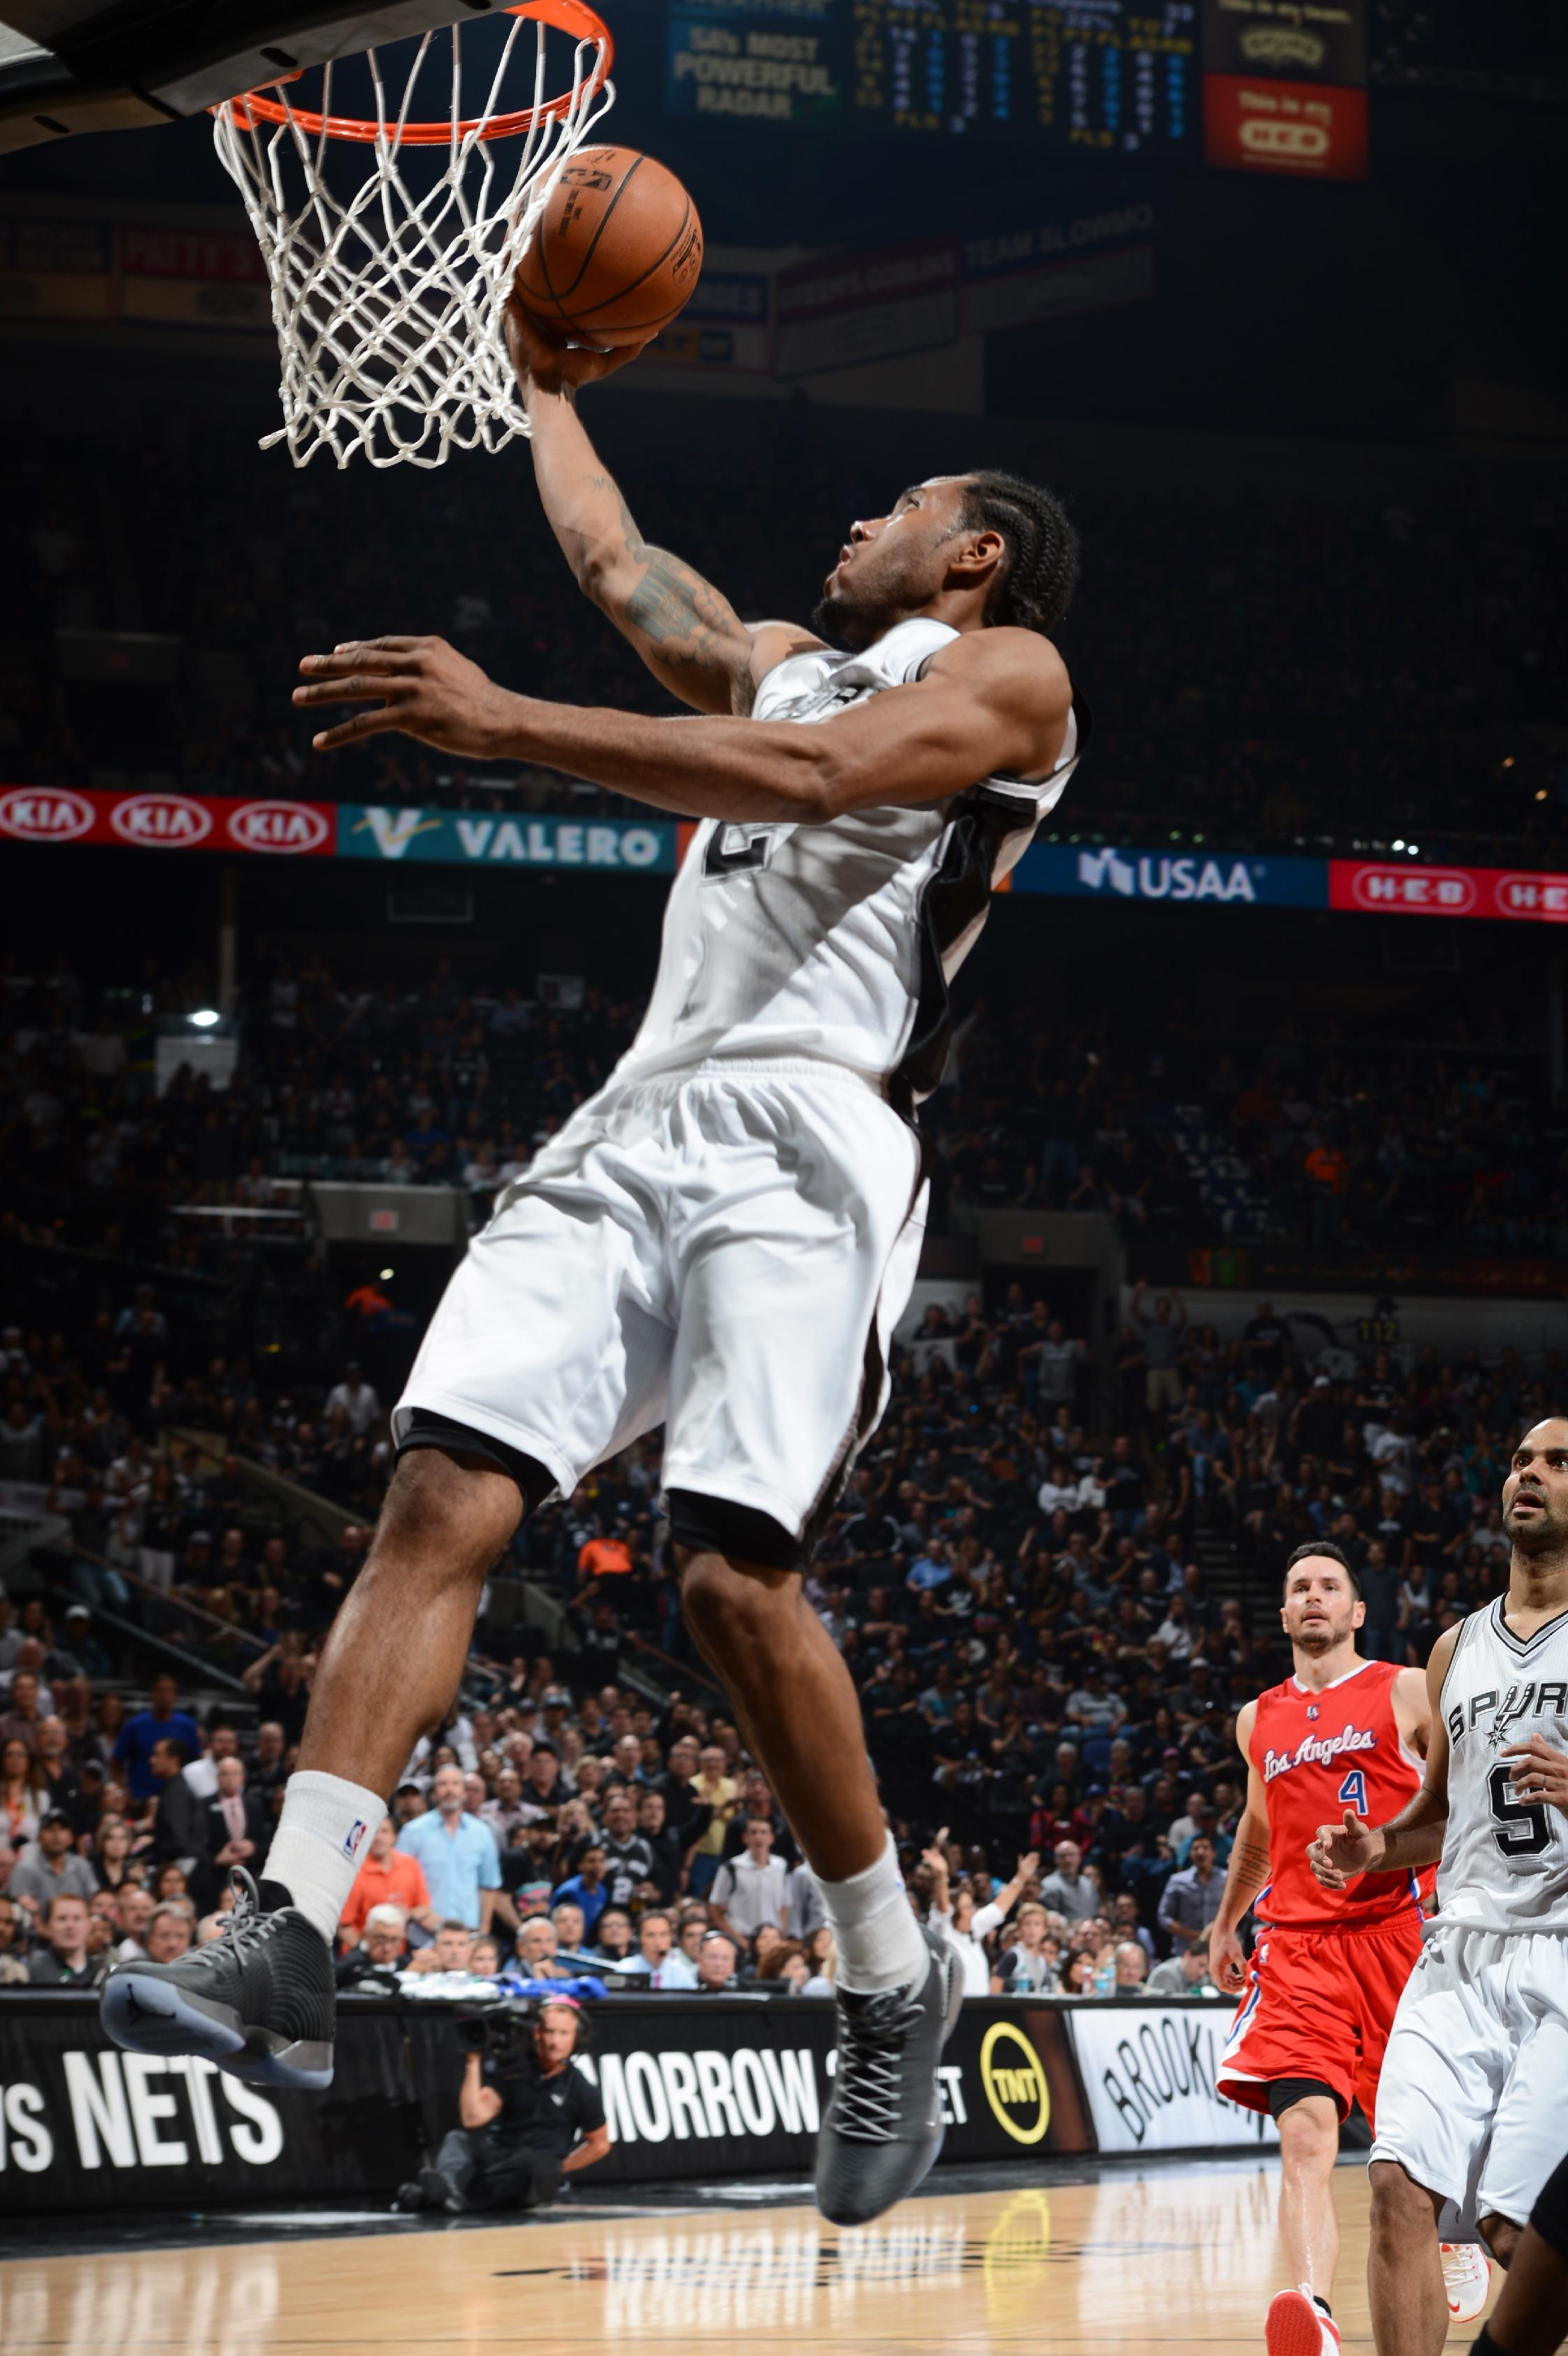 Kawhi, Spurs throttle Clippers in Game 3, take 2-1 series lead